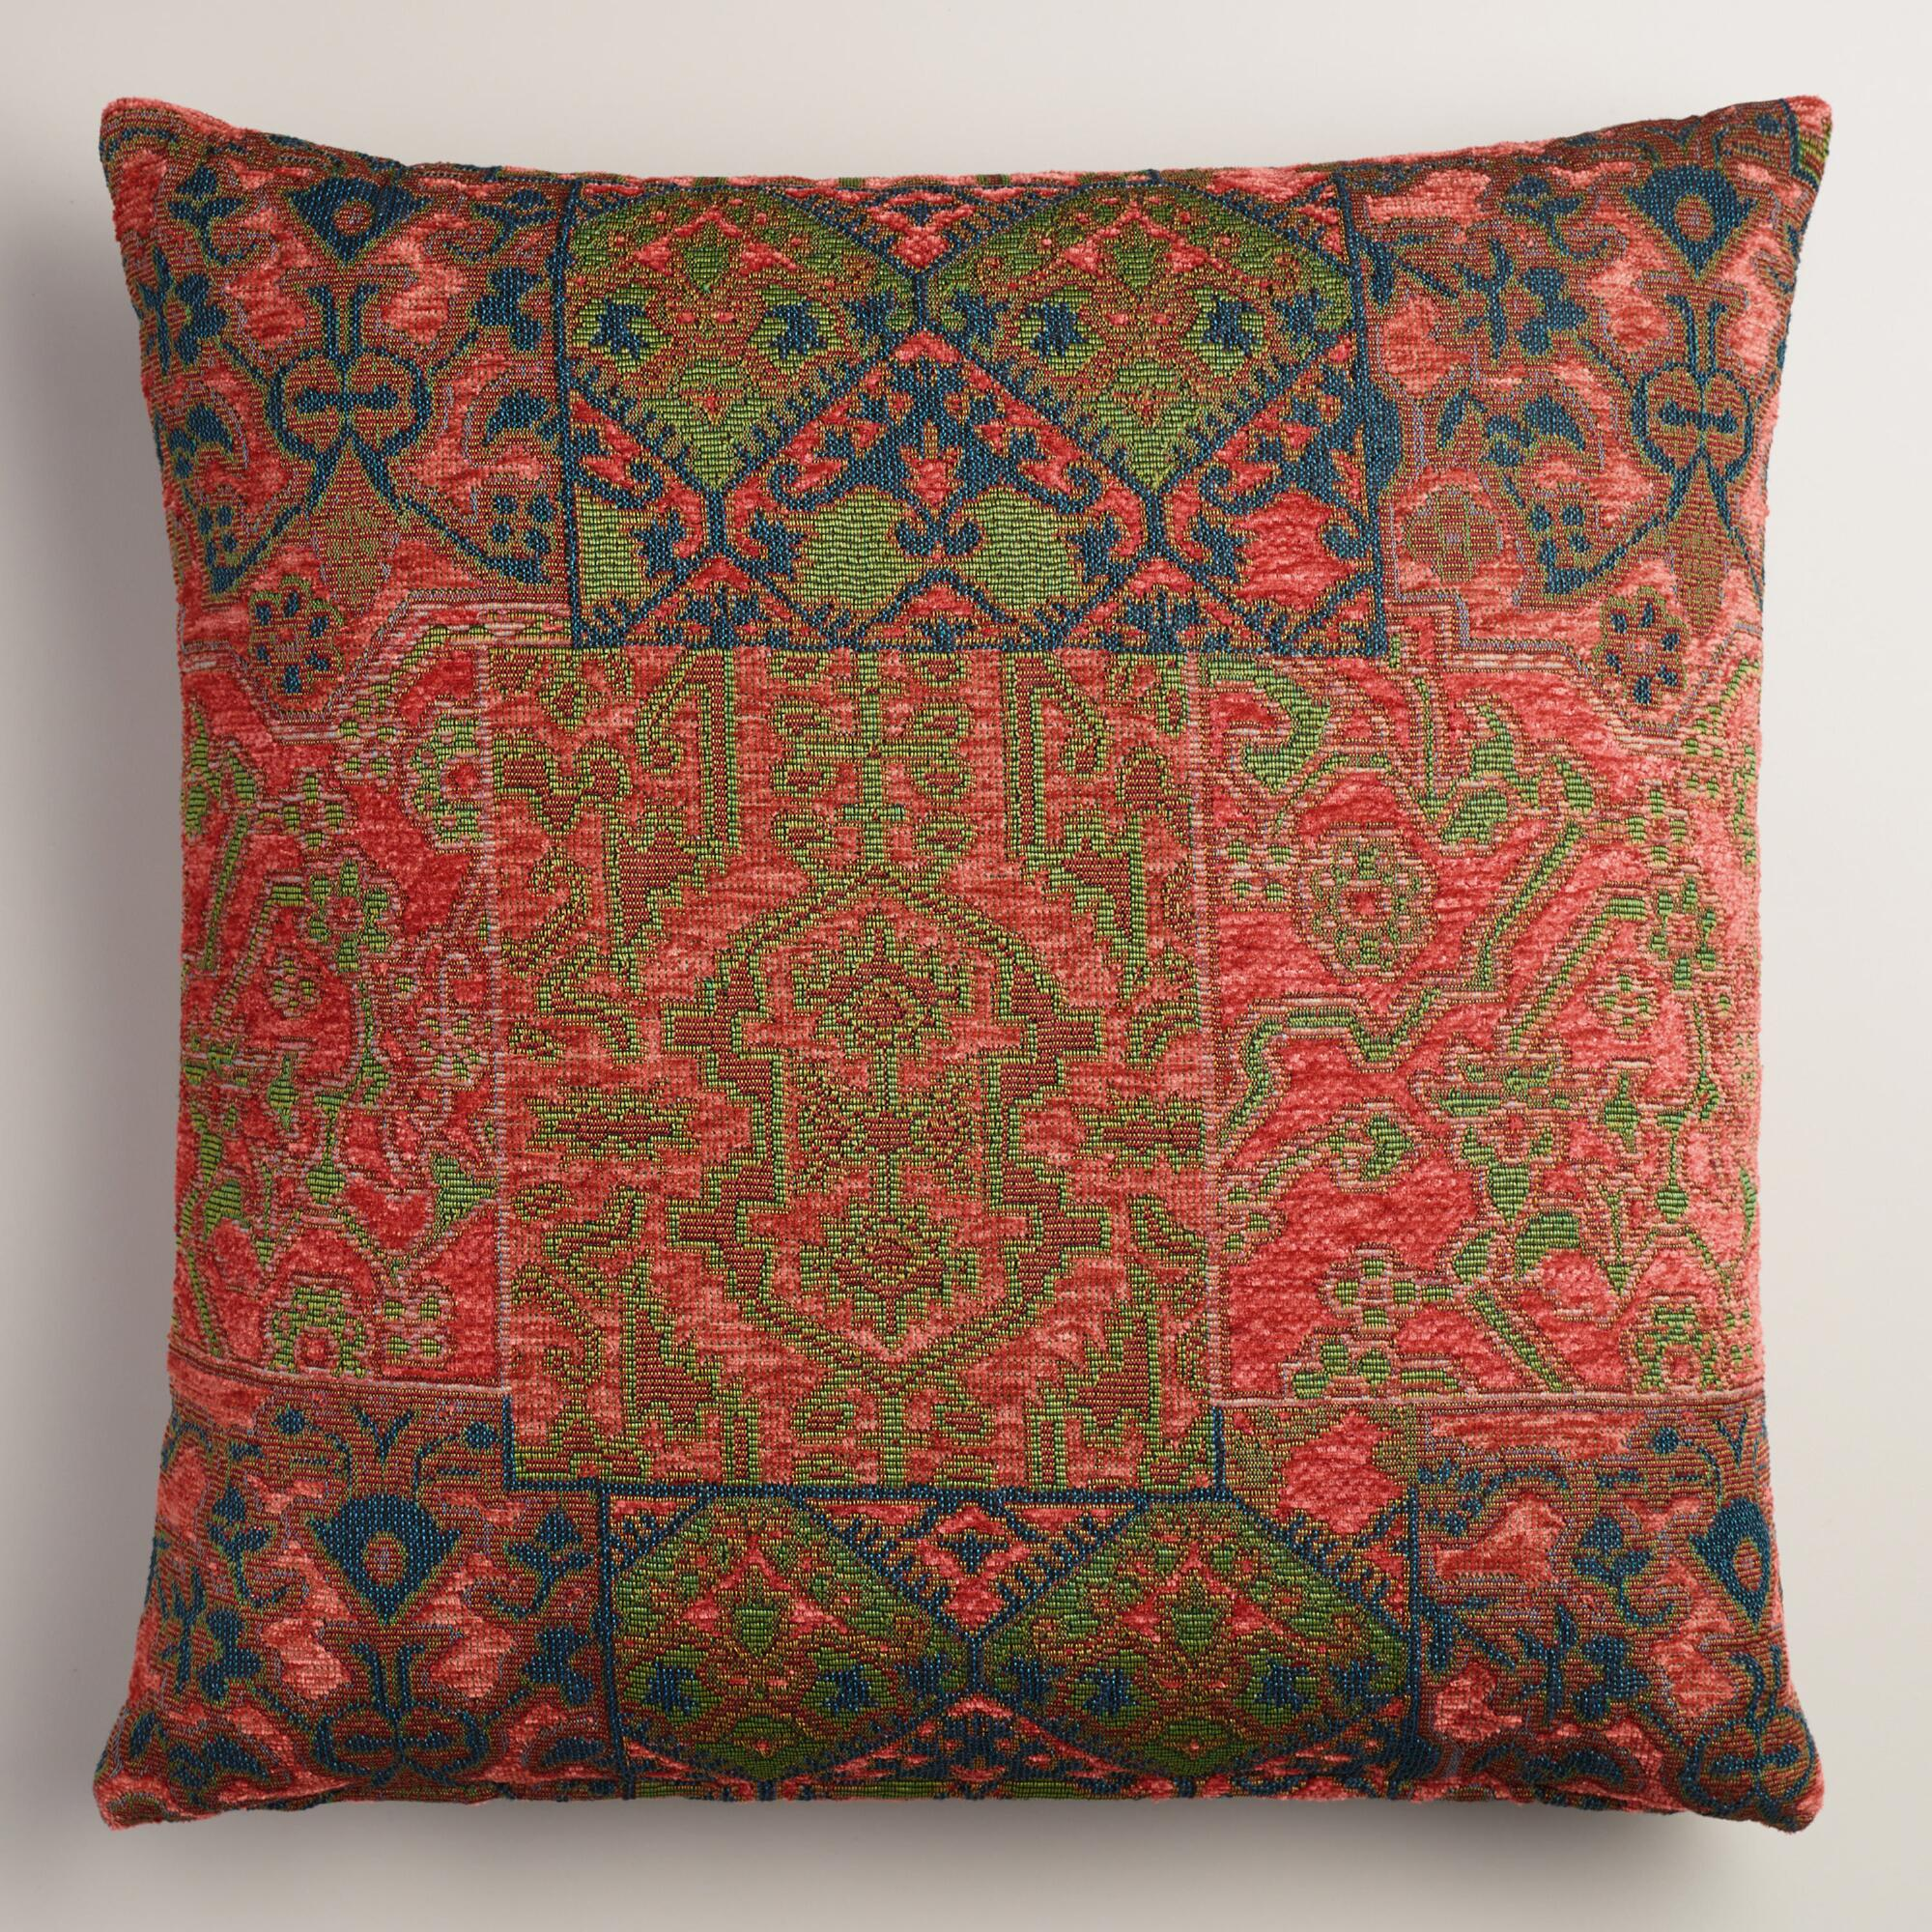 Orange and Red Marrakesh Jacquard Throw Pillow World Market